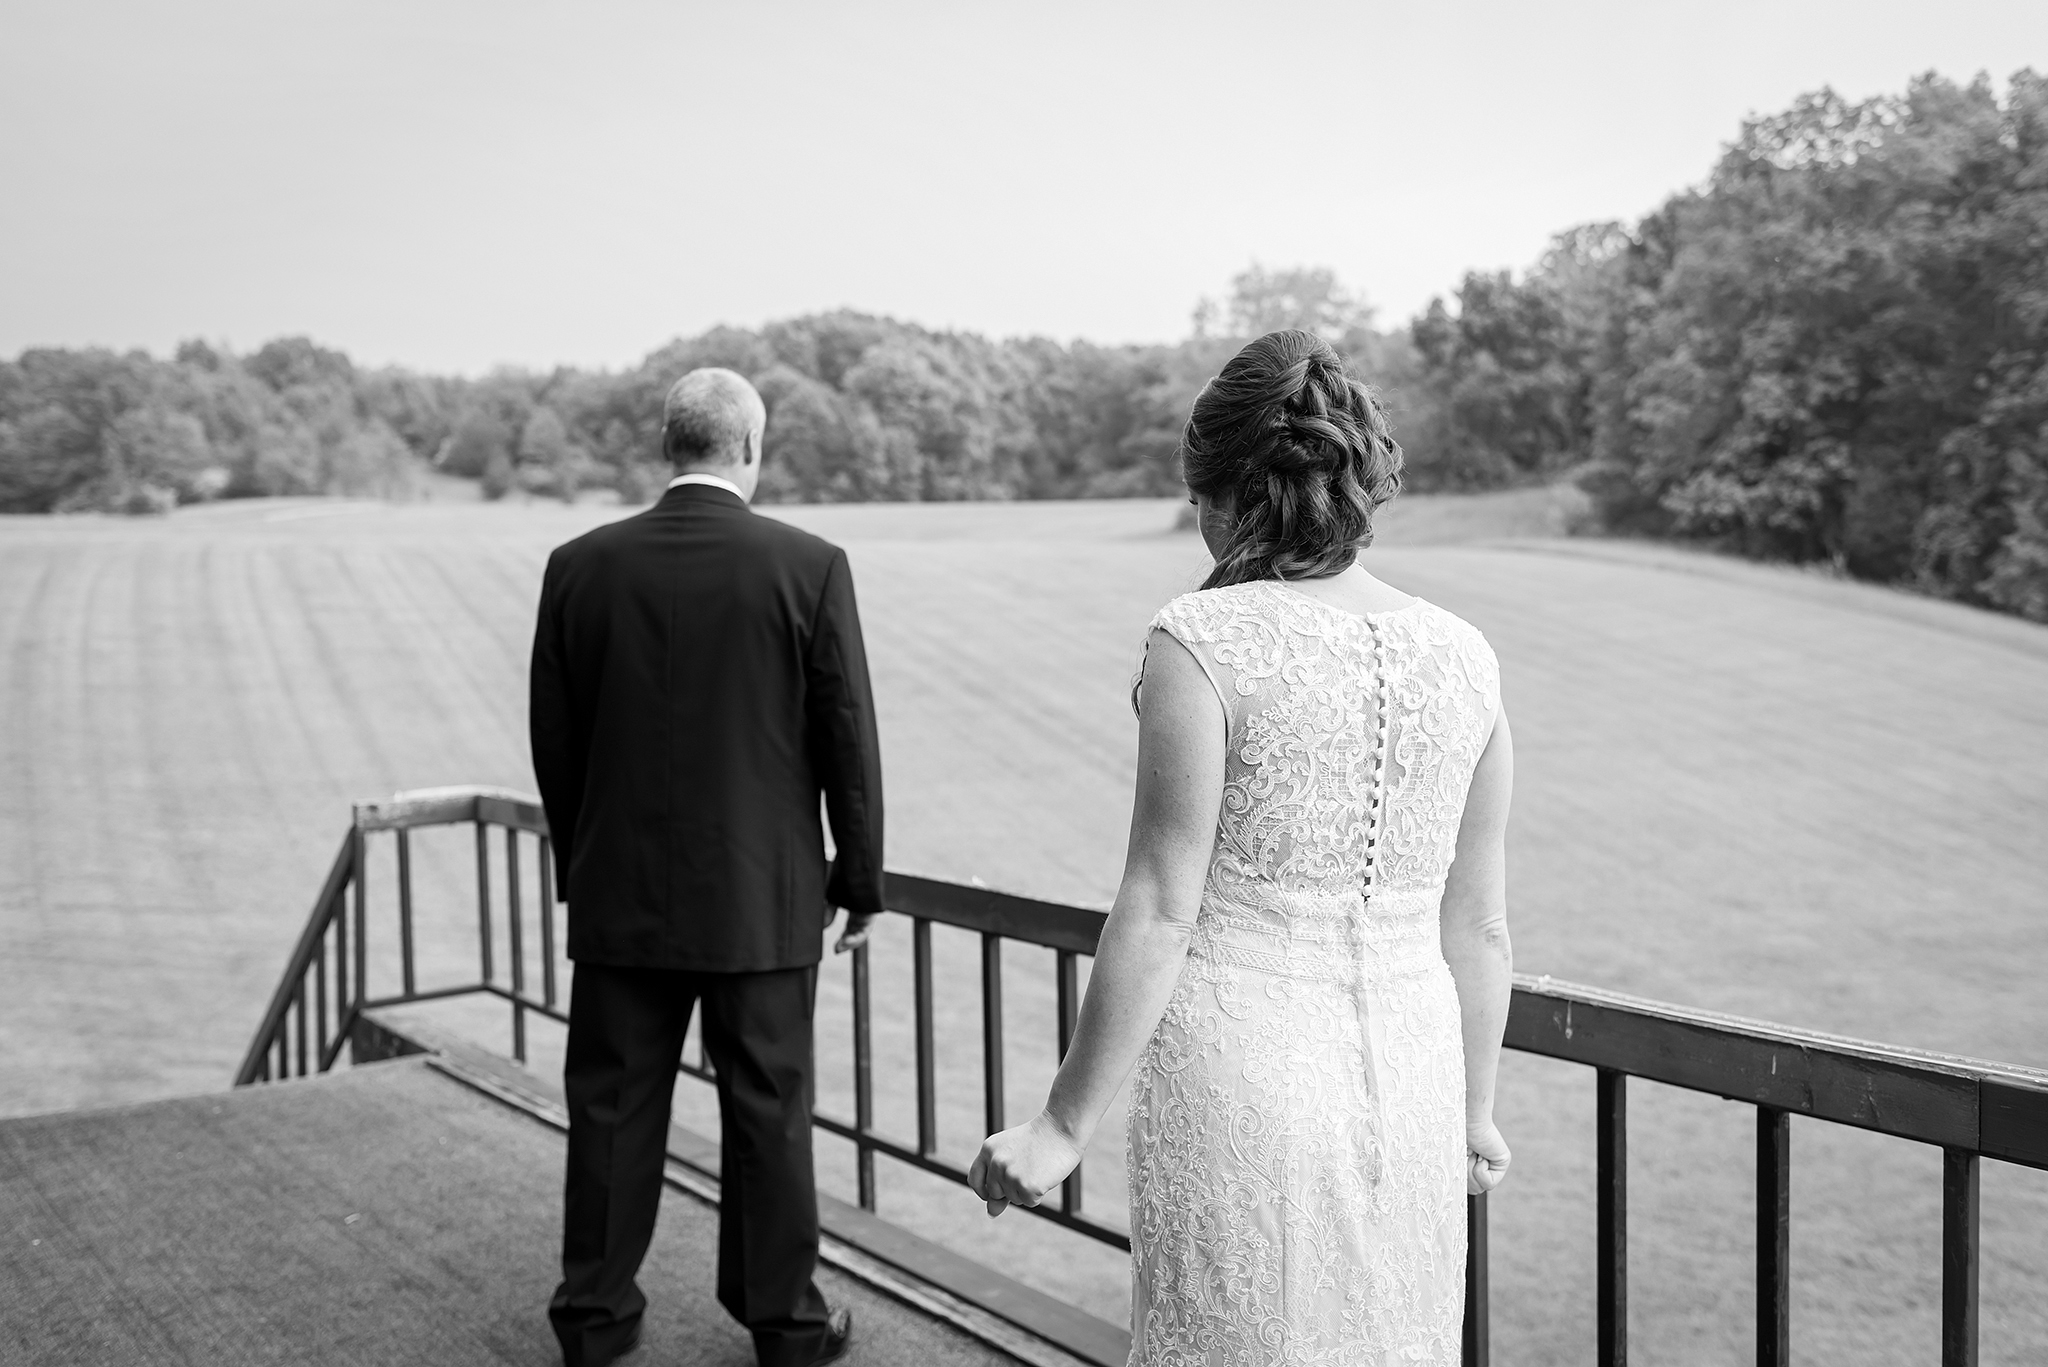 Lindsay-Adkins-Photography-Michigan-Wedding-Photographer-Sauk-Valley-Brooklyn-Michigan15